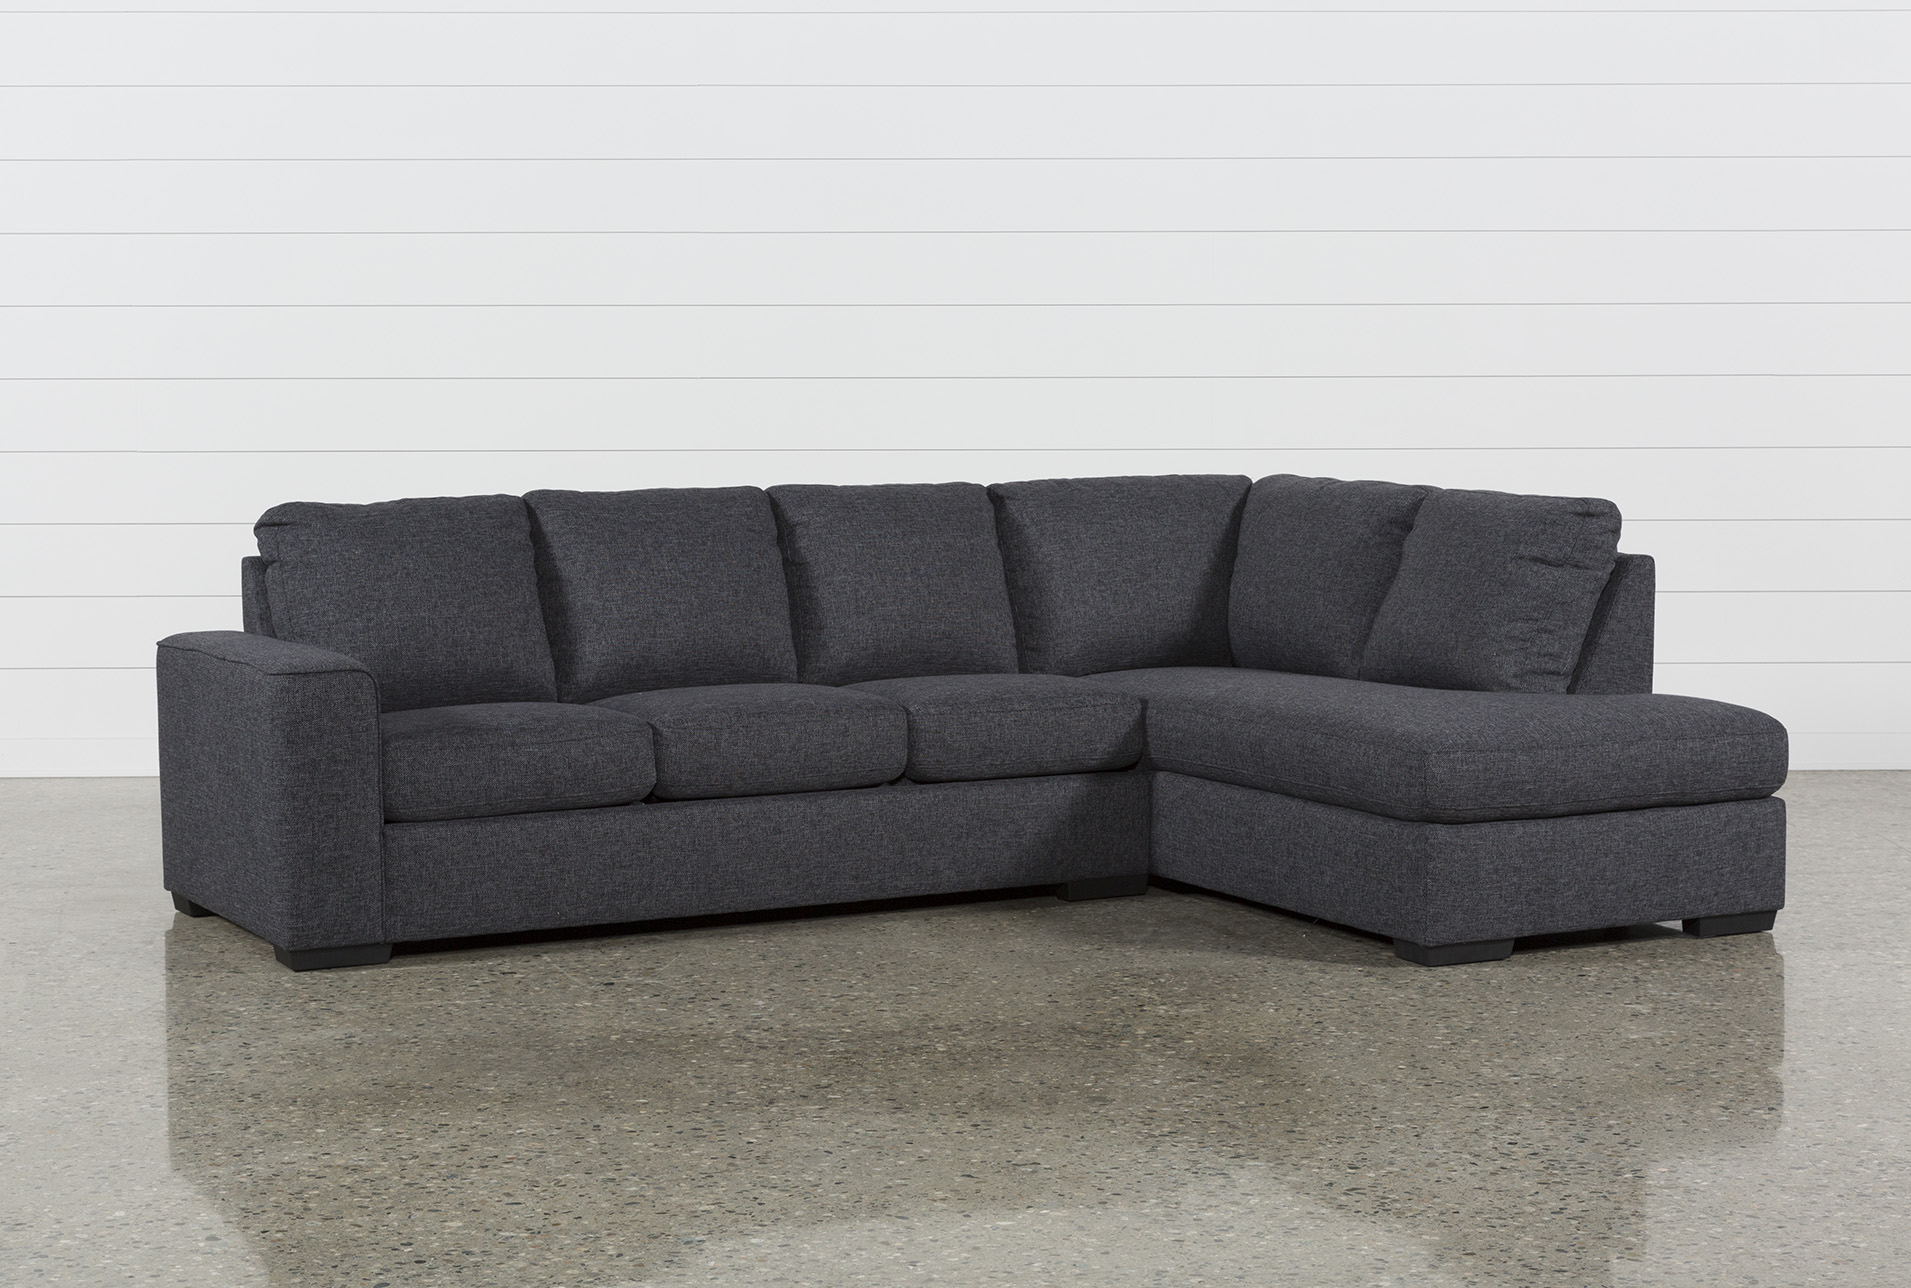 Lucy Dark Grey 2 Piece Sectional W/Raf Chaise (Qty: 1) Has Been  Successfully Added To Your Cart.